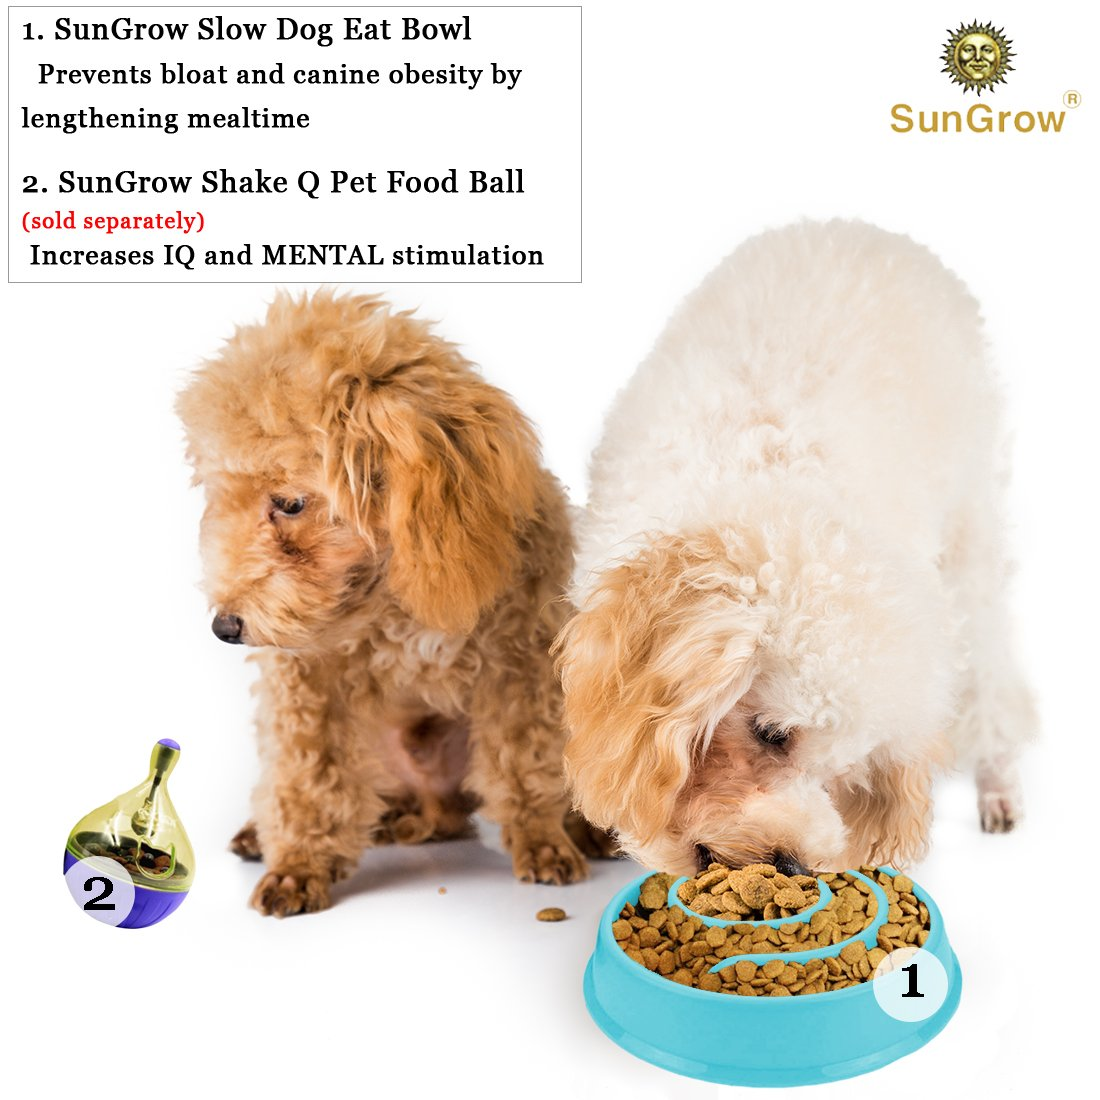 Amazon.com : Slow Dog Feed Bowl by SunGrow -- Prevents canine obesity -  Free from BPA, PVC and phthalate toxic materials - Promotes fun,  interactive, ...